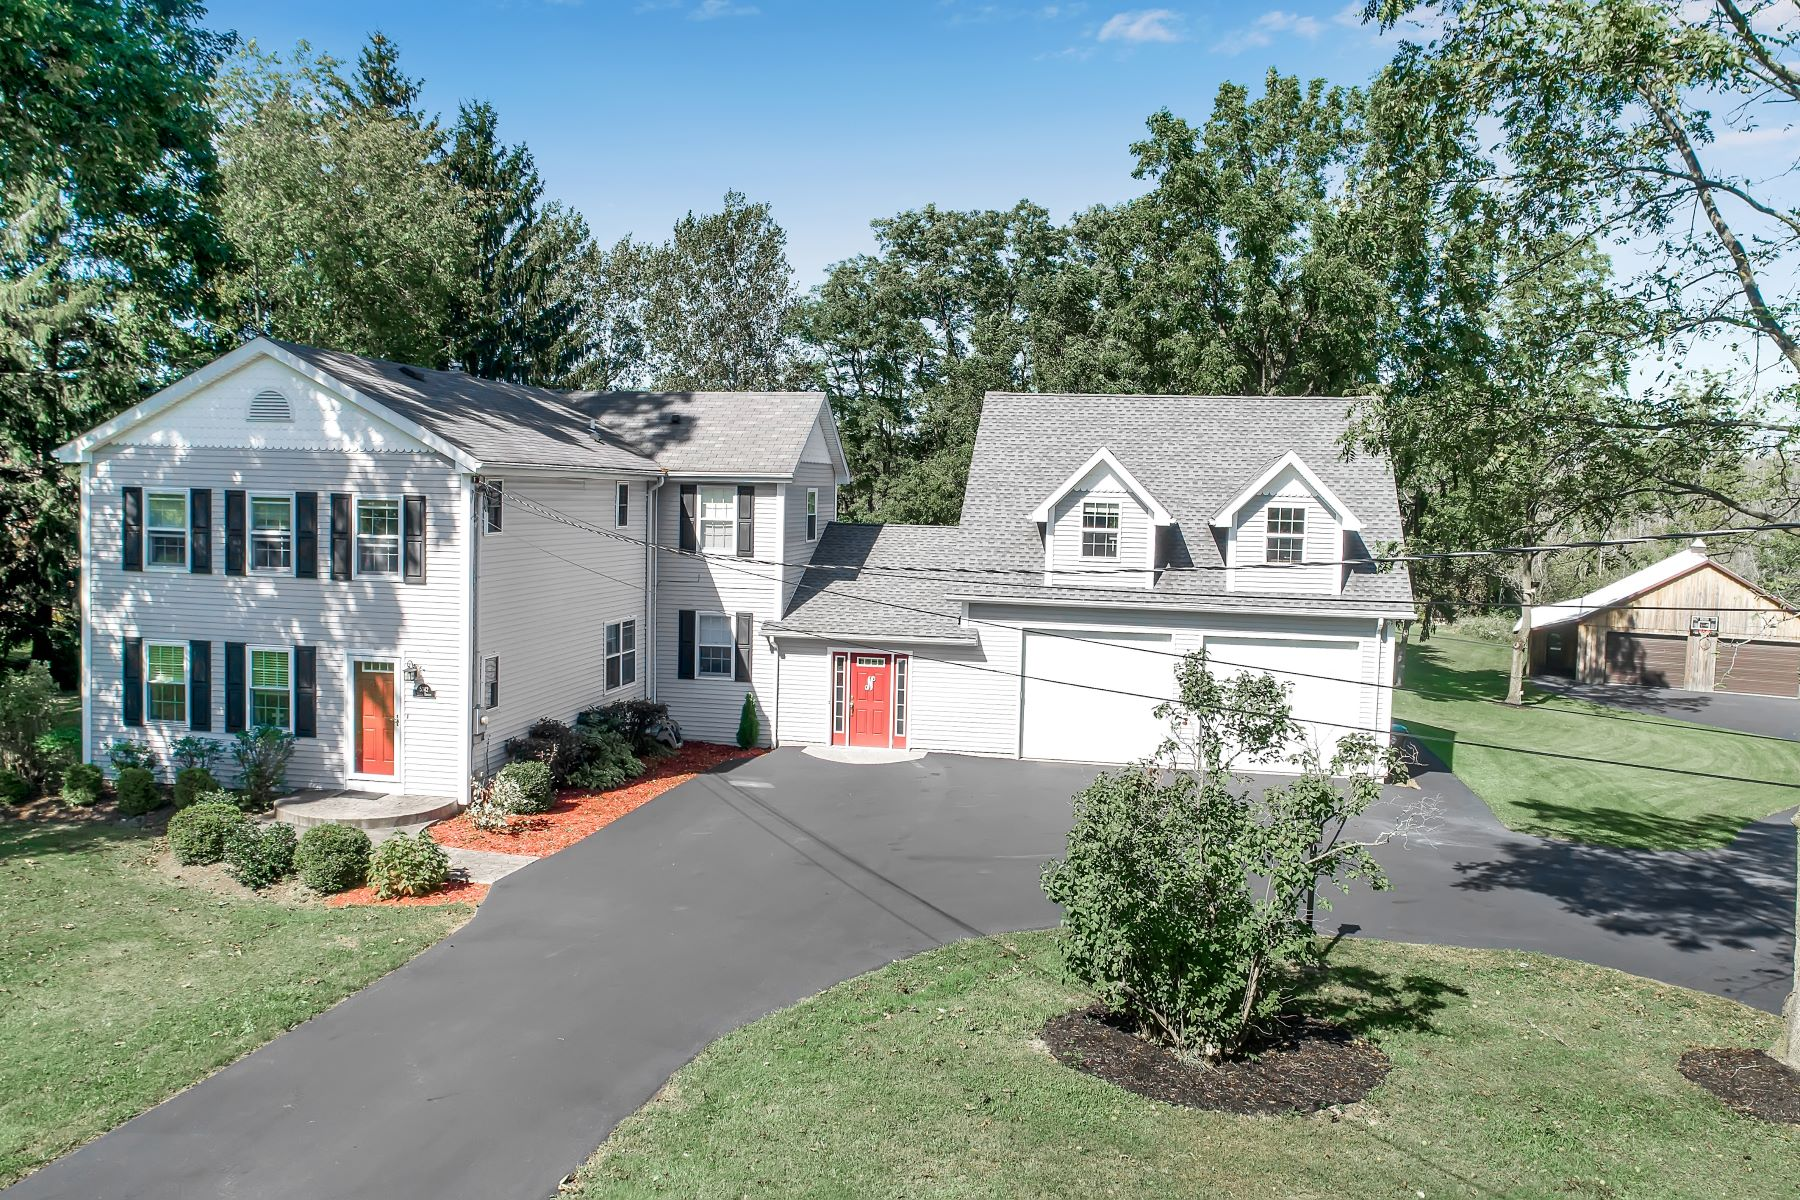 Single Family Homes for Active at Farmhouse in Orchard Park 5342 Armor Duells Road Orchard Park, New York 14127 United States